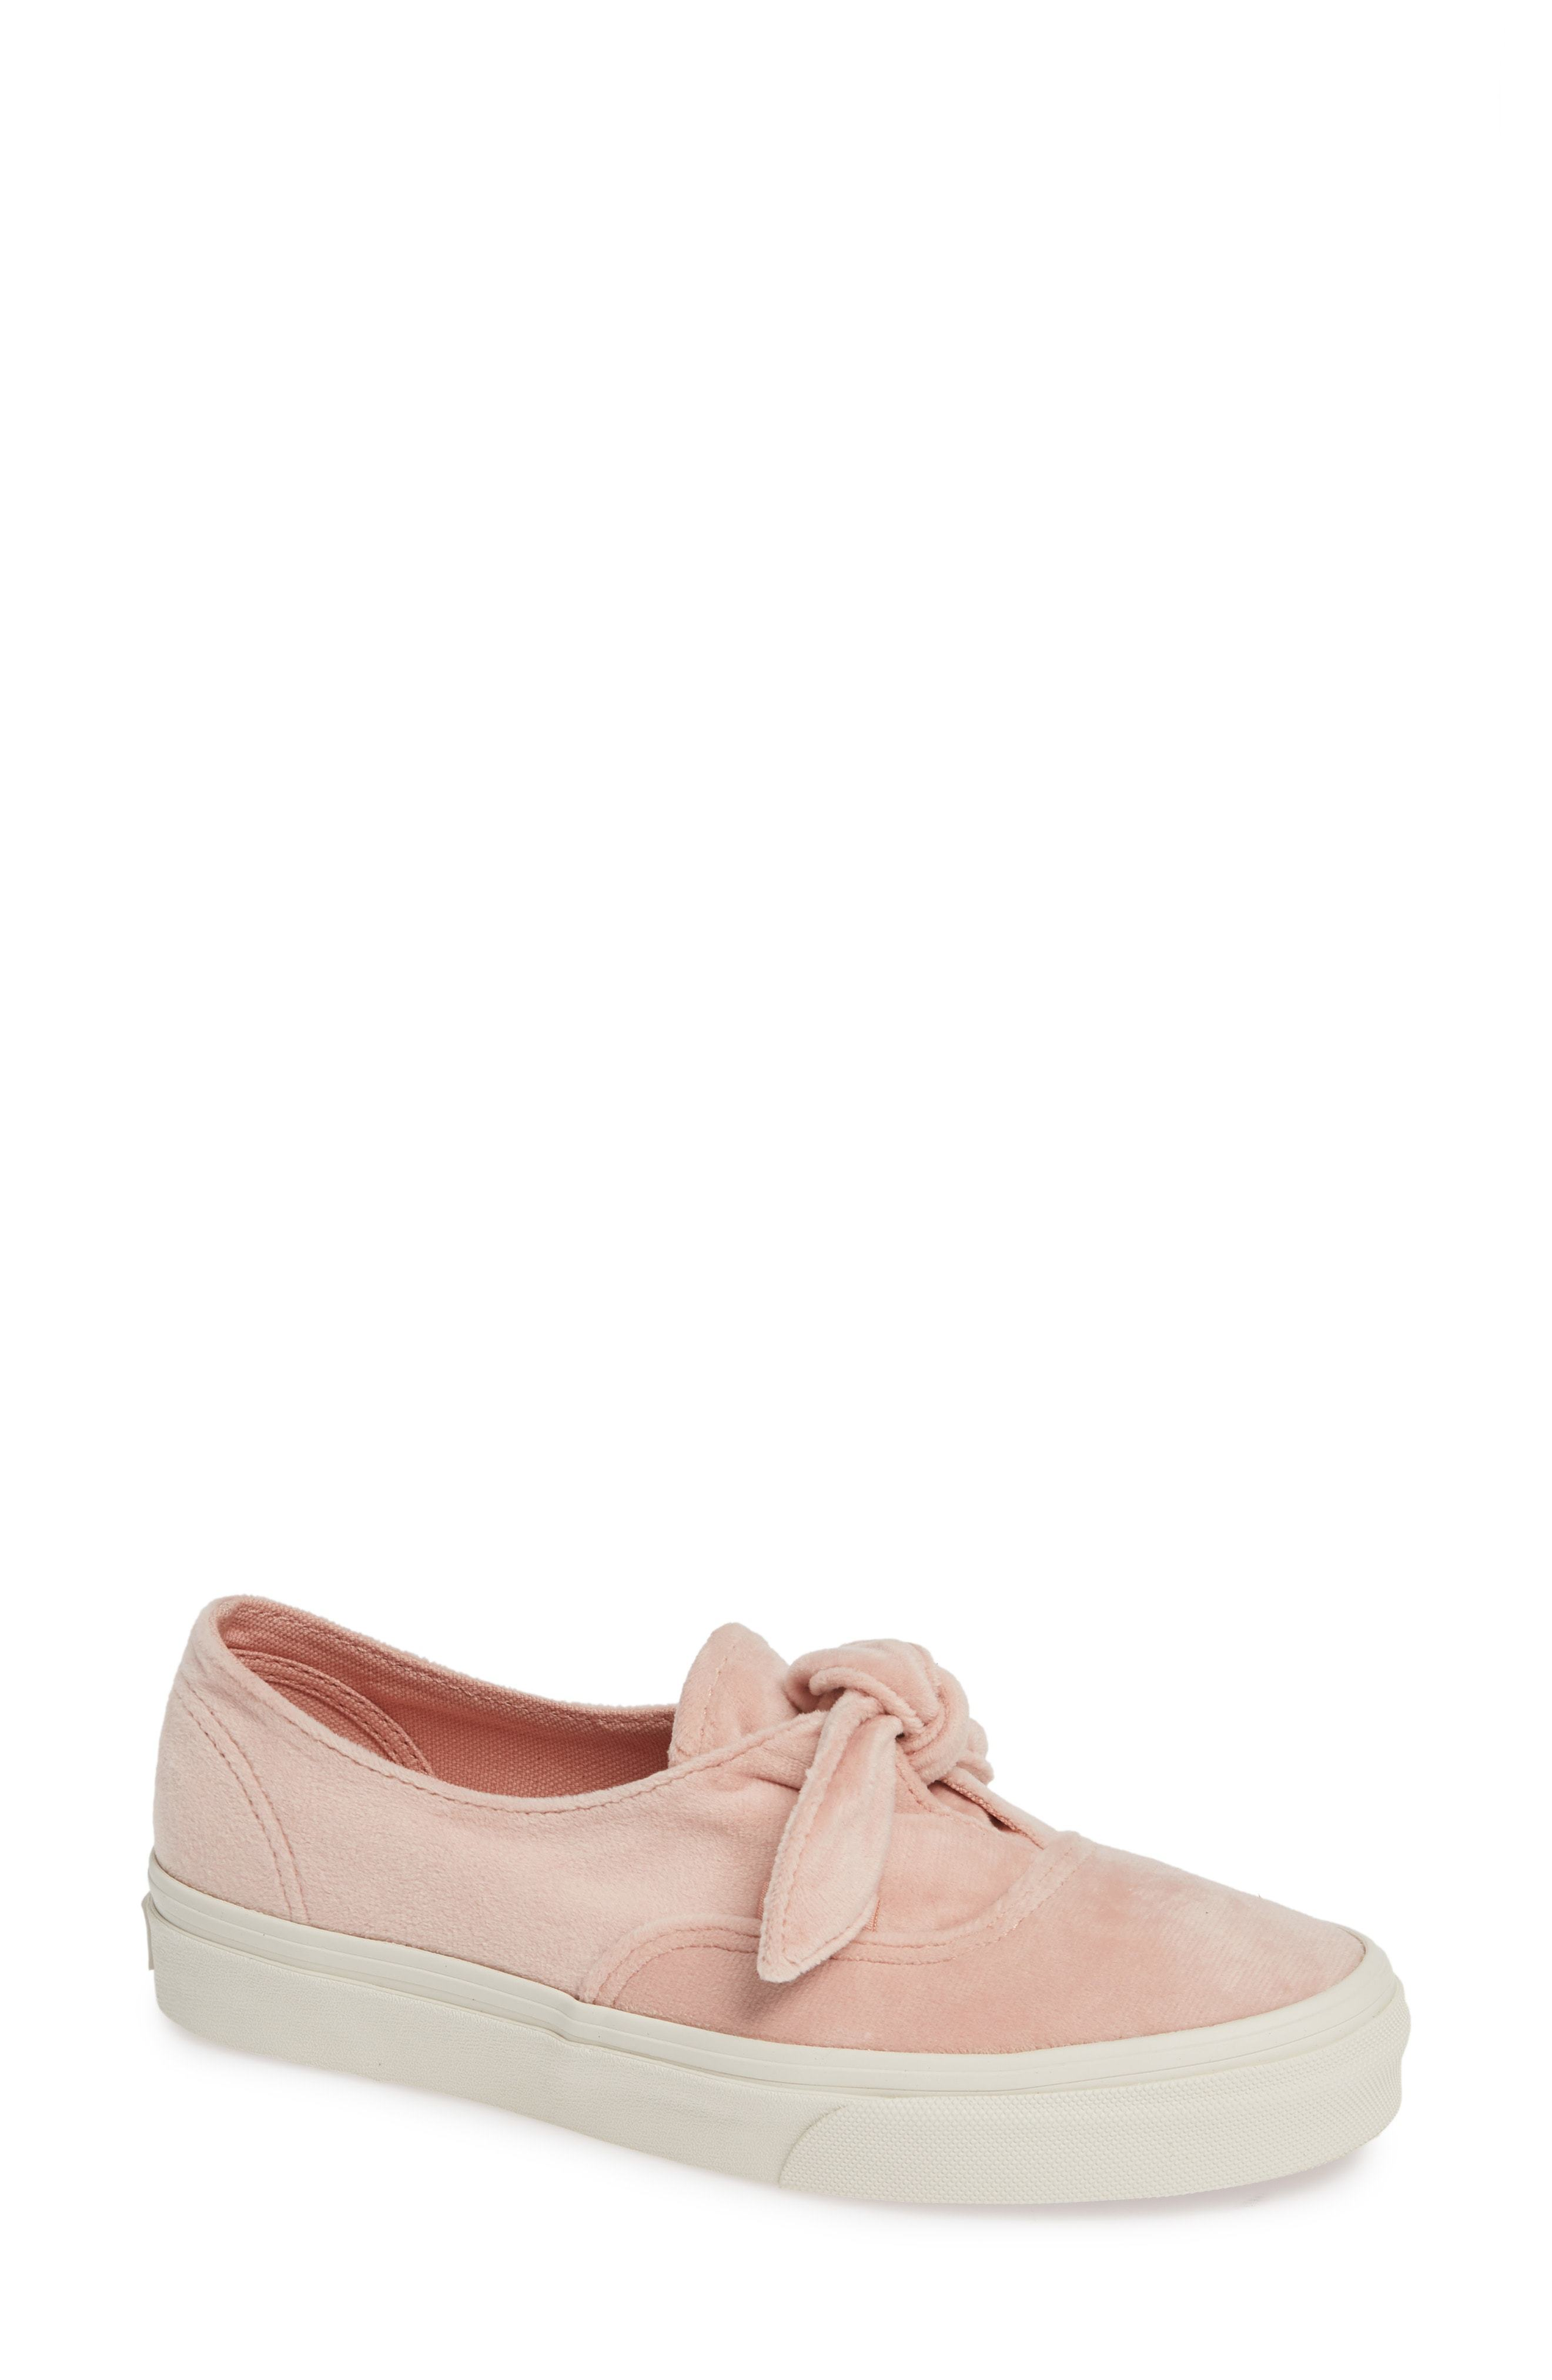 pink vans with bow